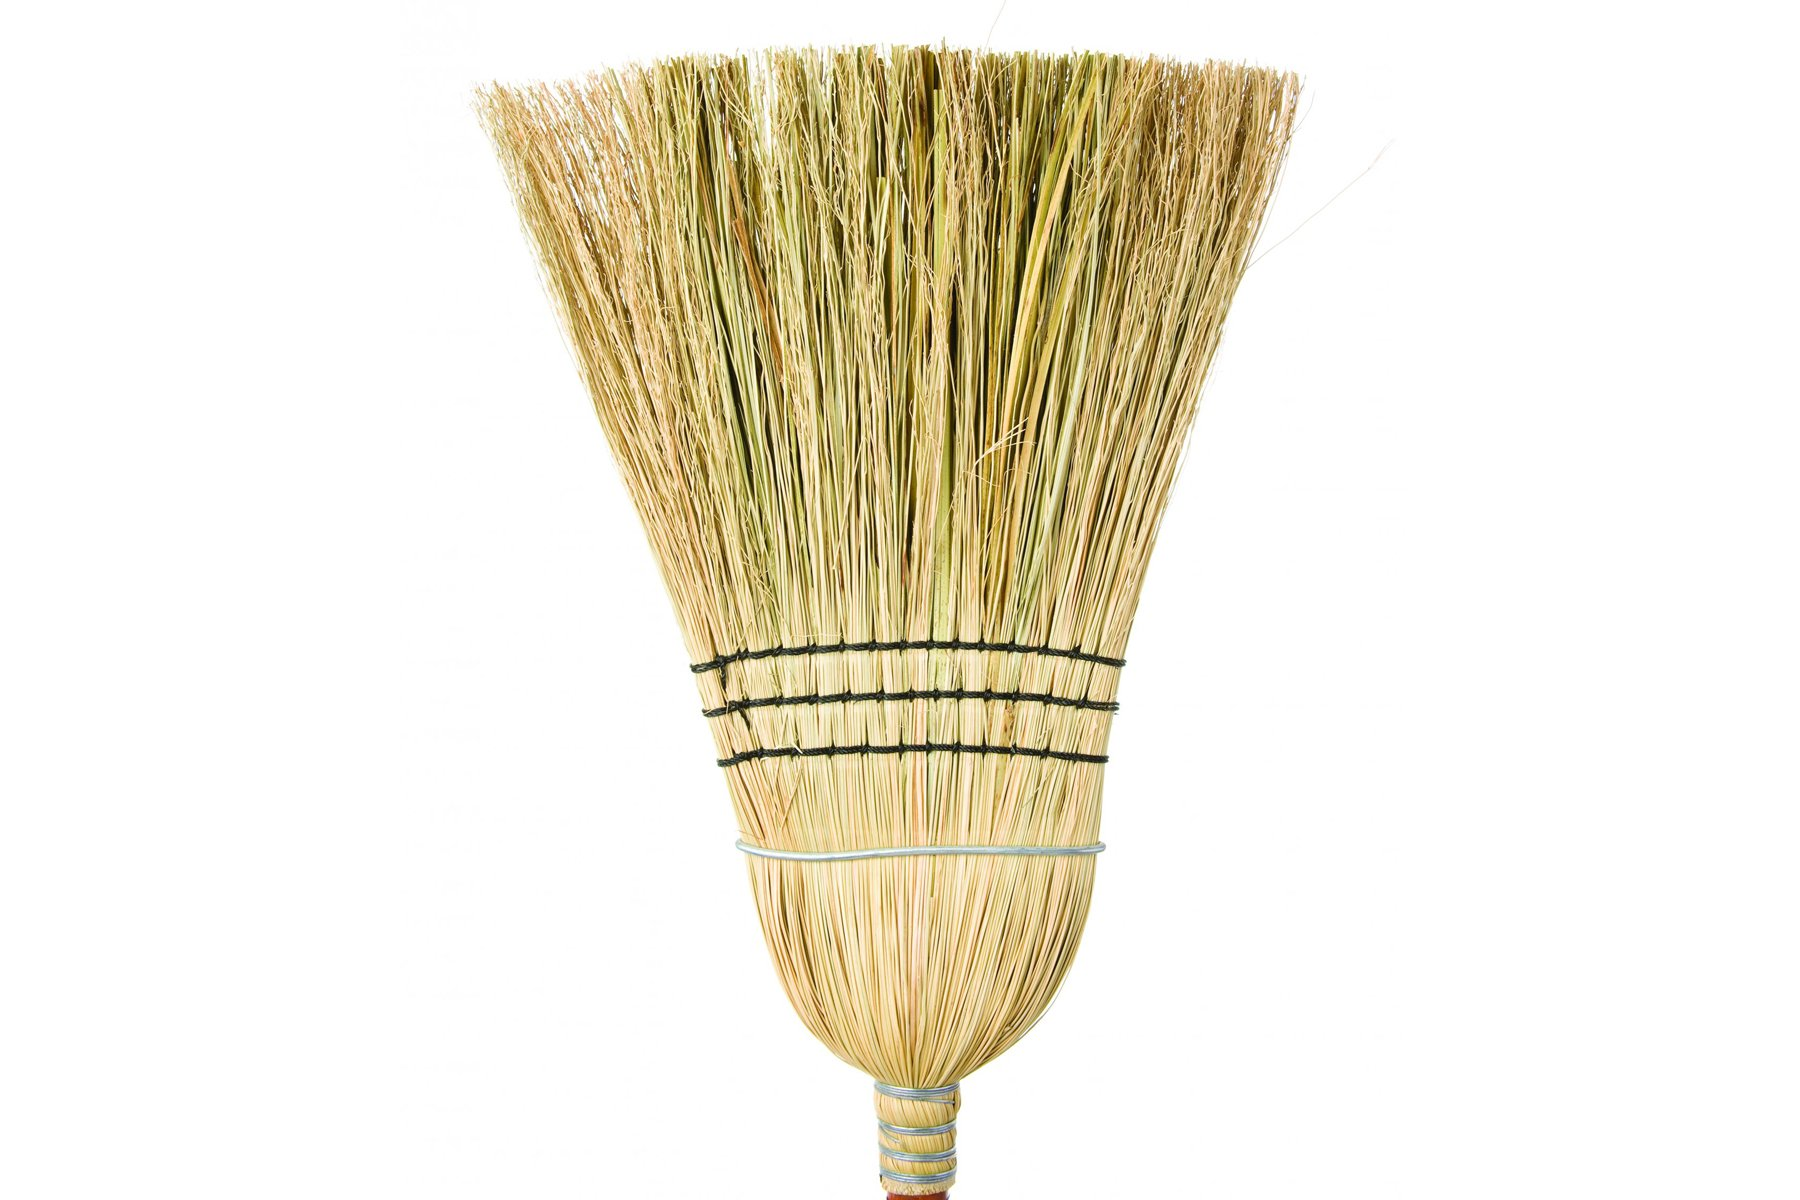 how to make a broom from broom corn